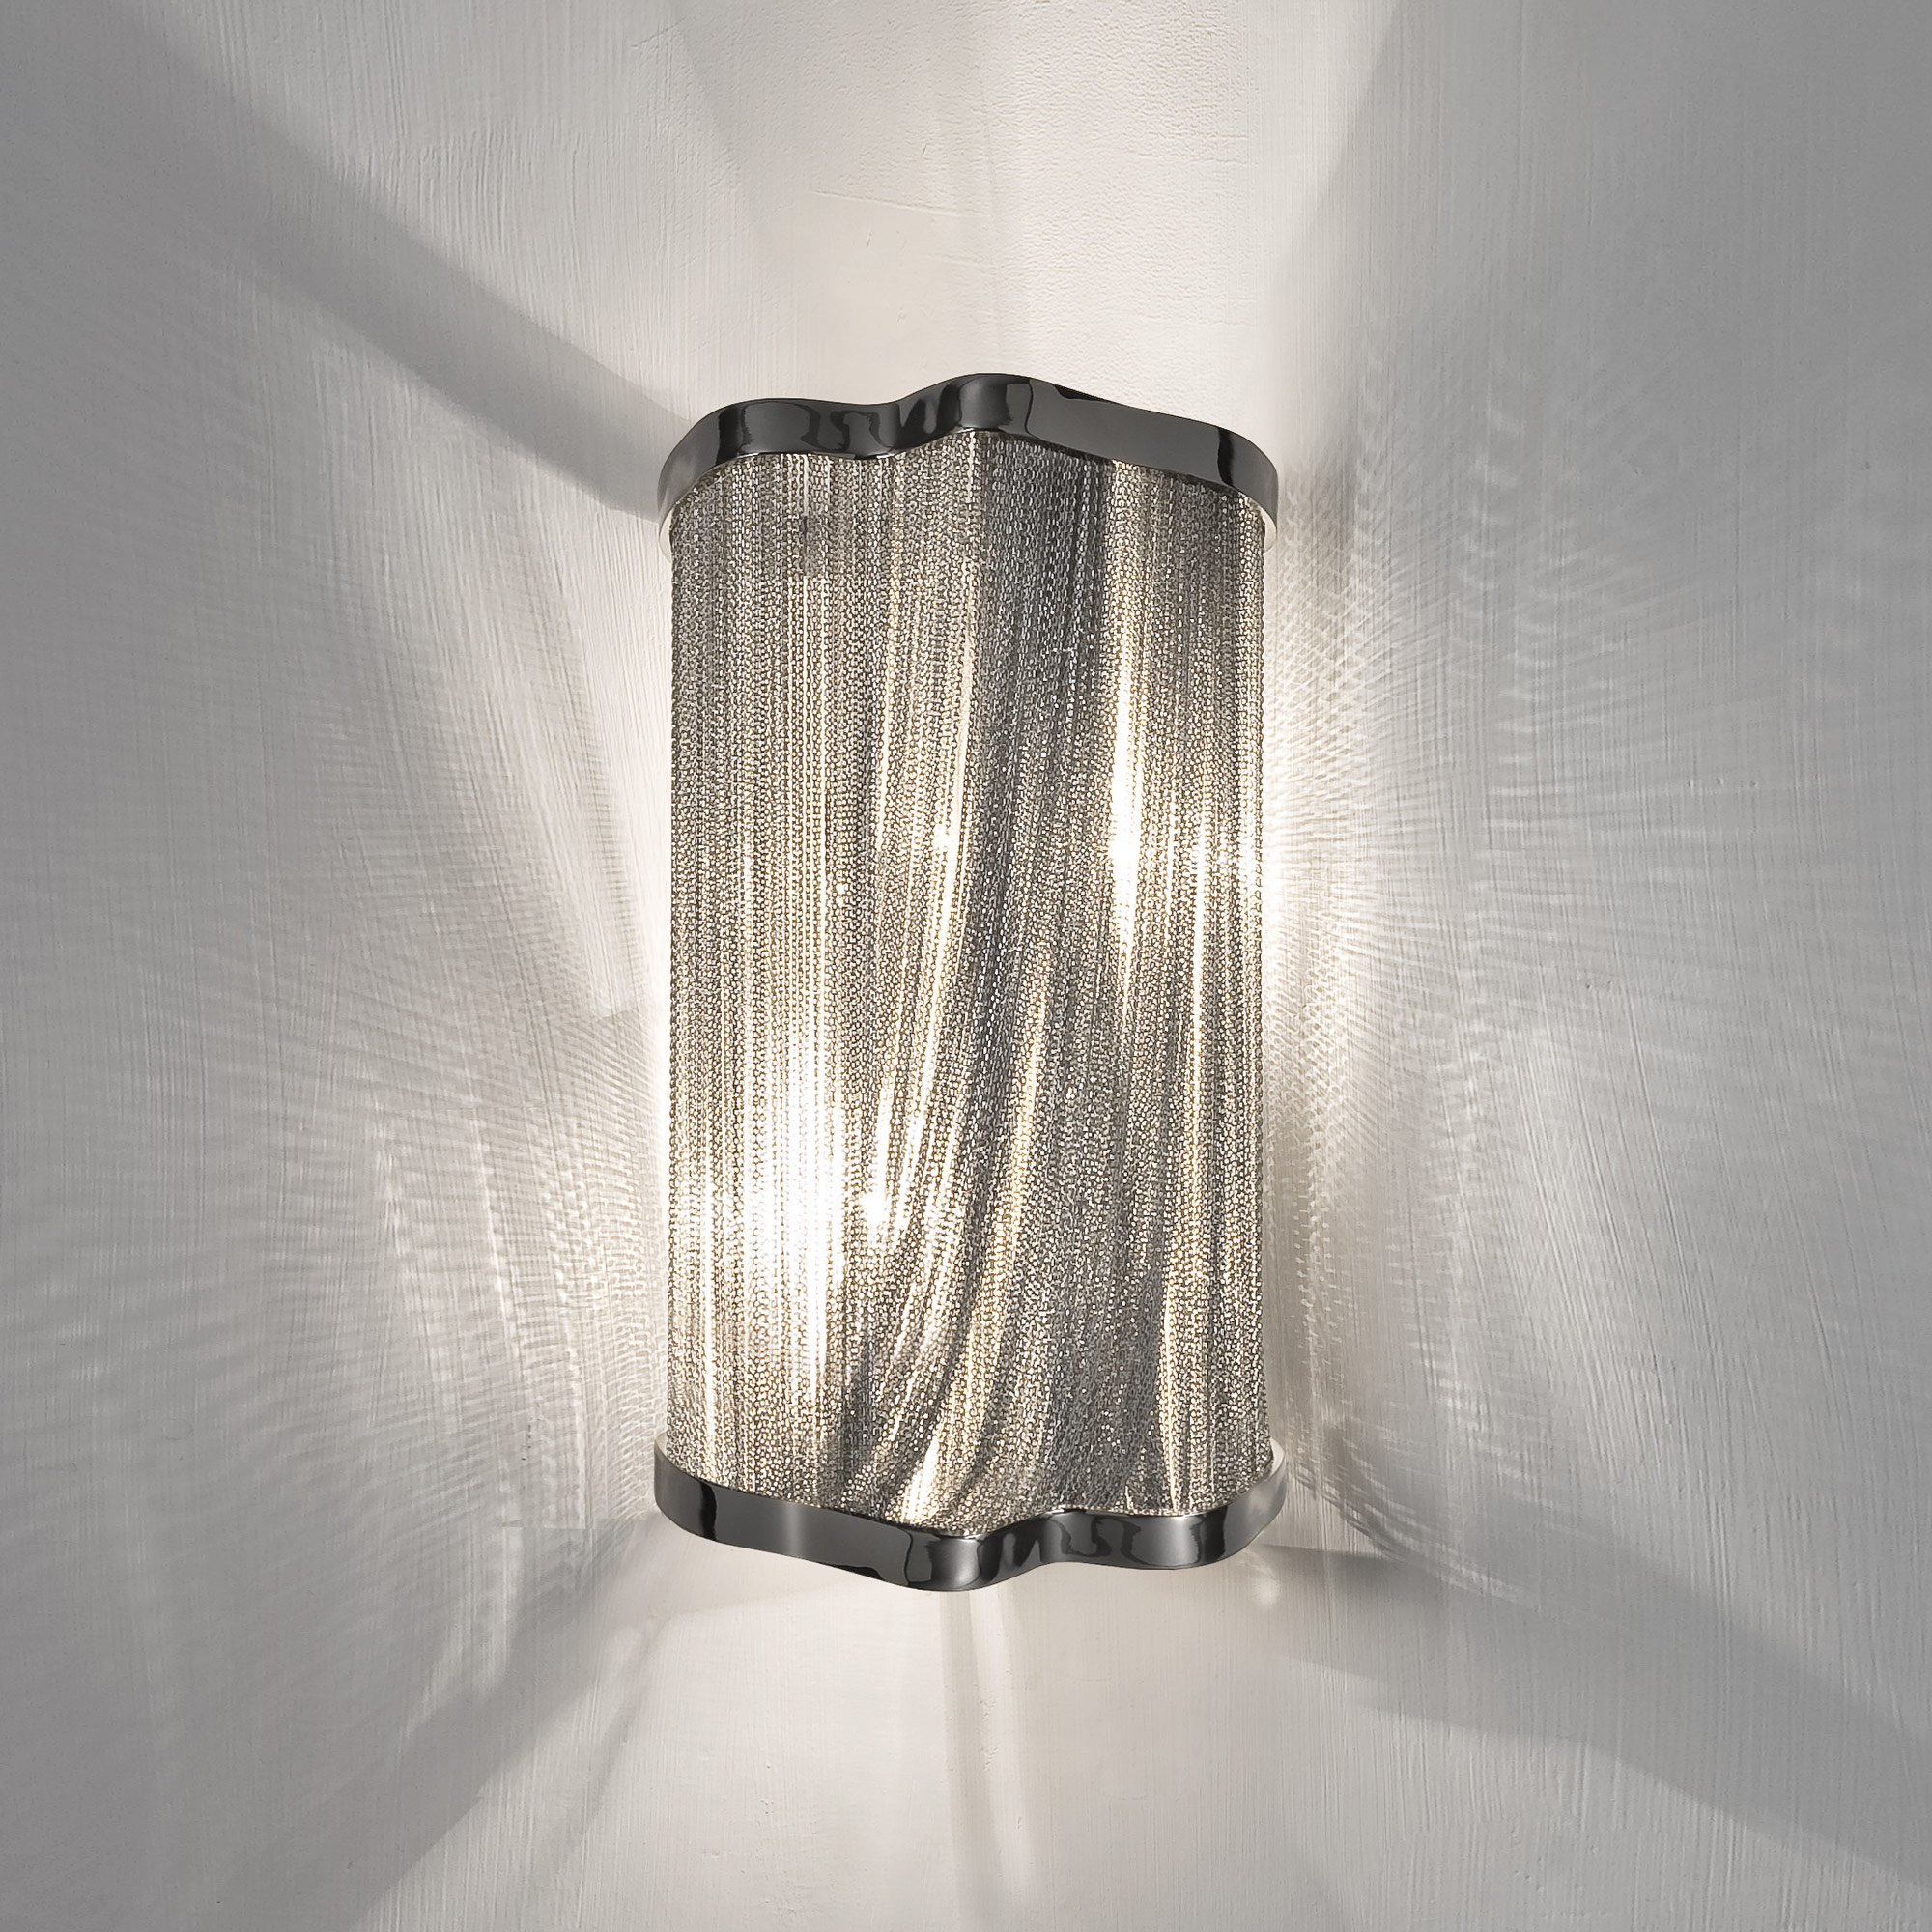 cheap wall sconce lighting. Cheap Wall Sconce Lighting